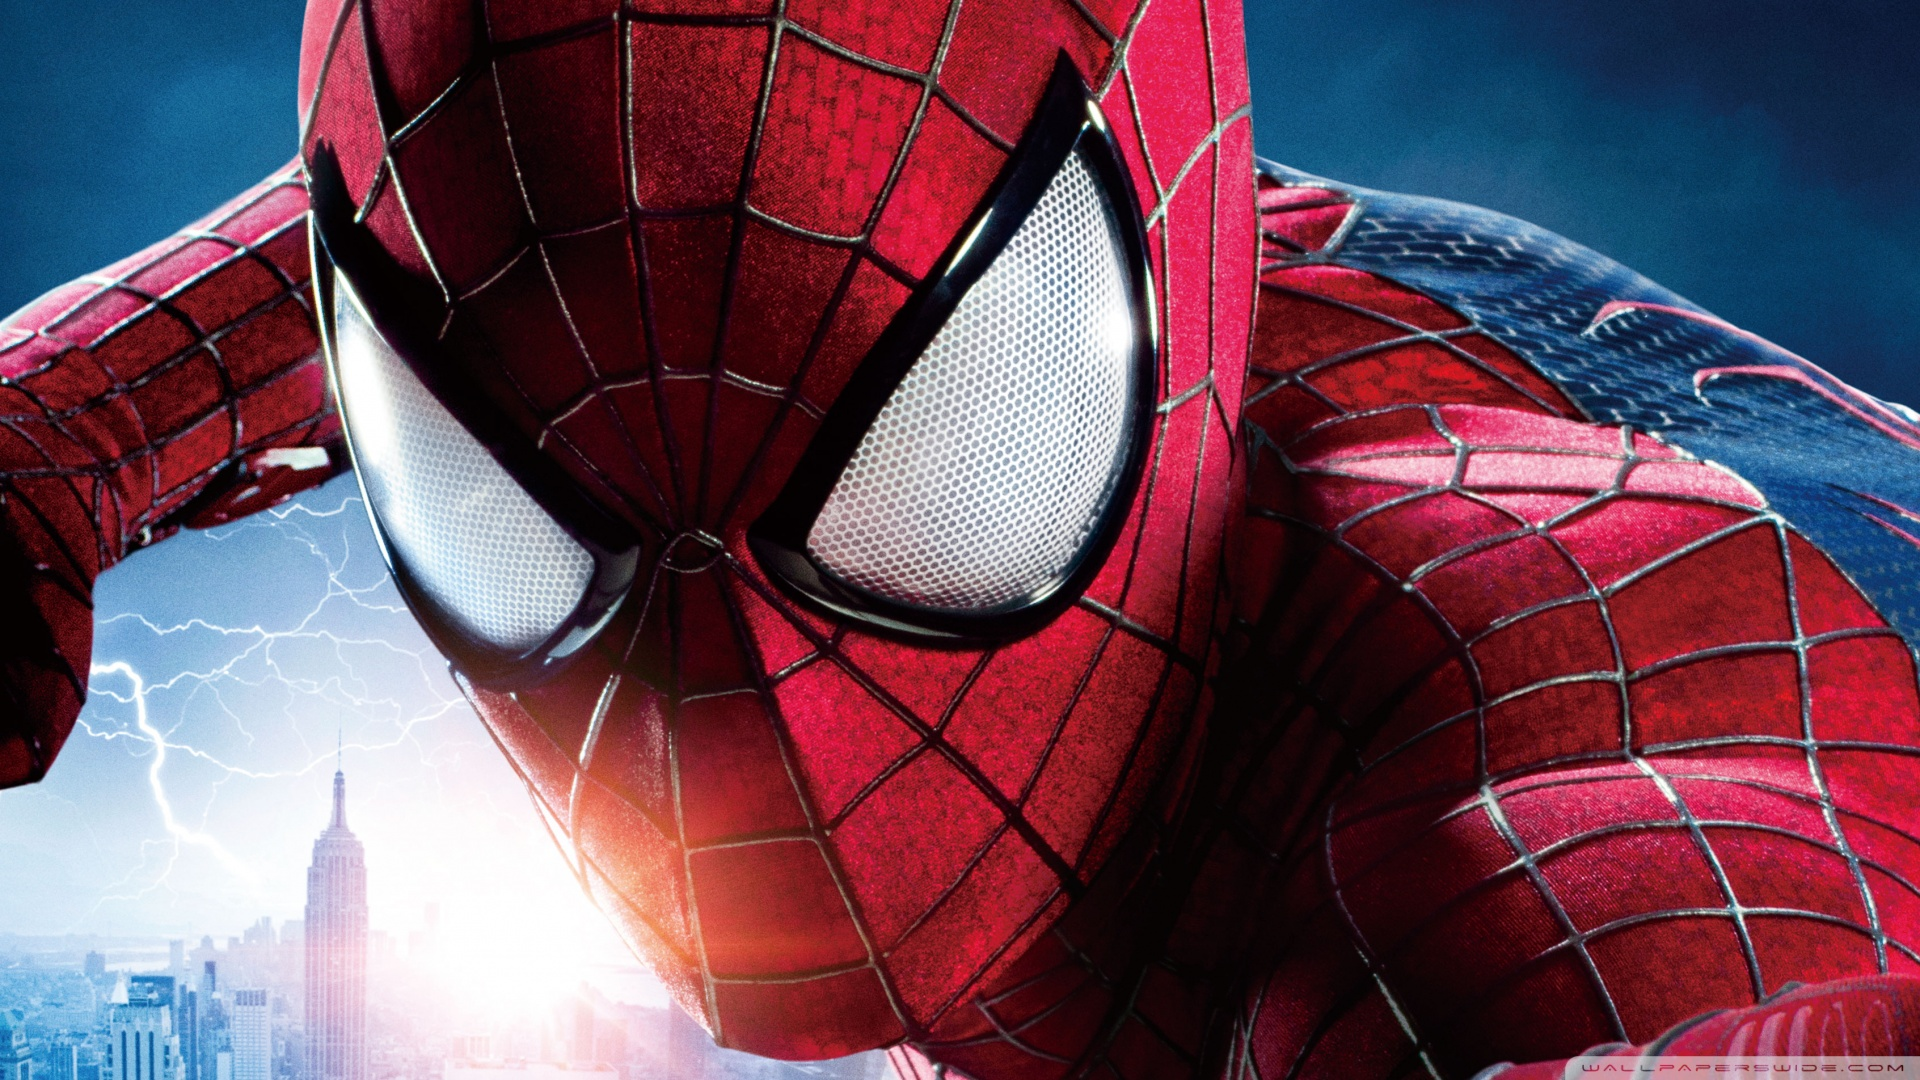 marvel live action movies images amazing siderman hd wallpaper and